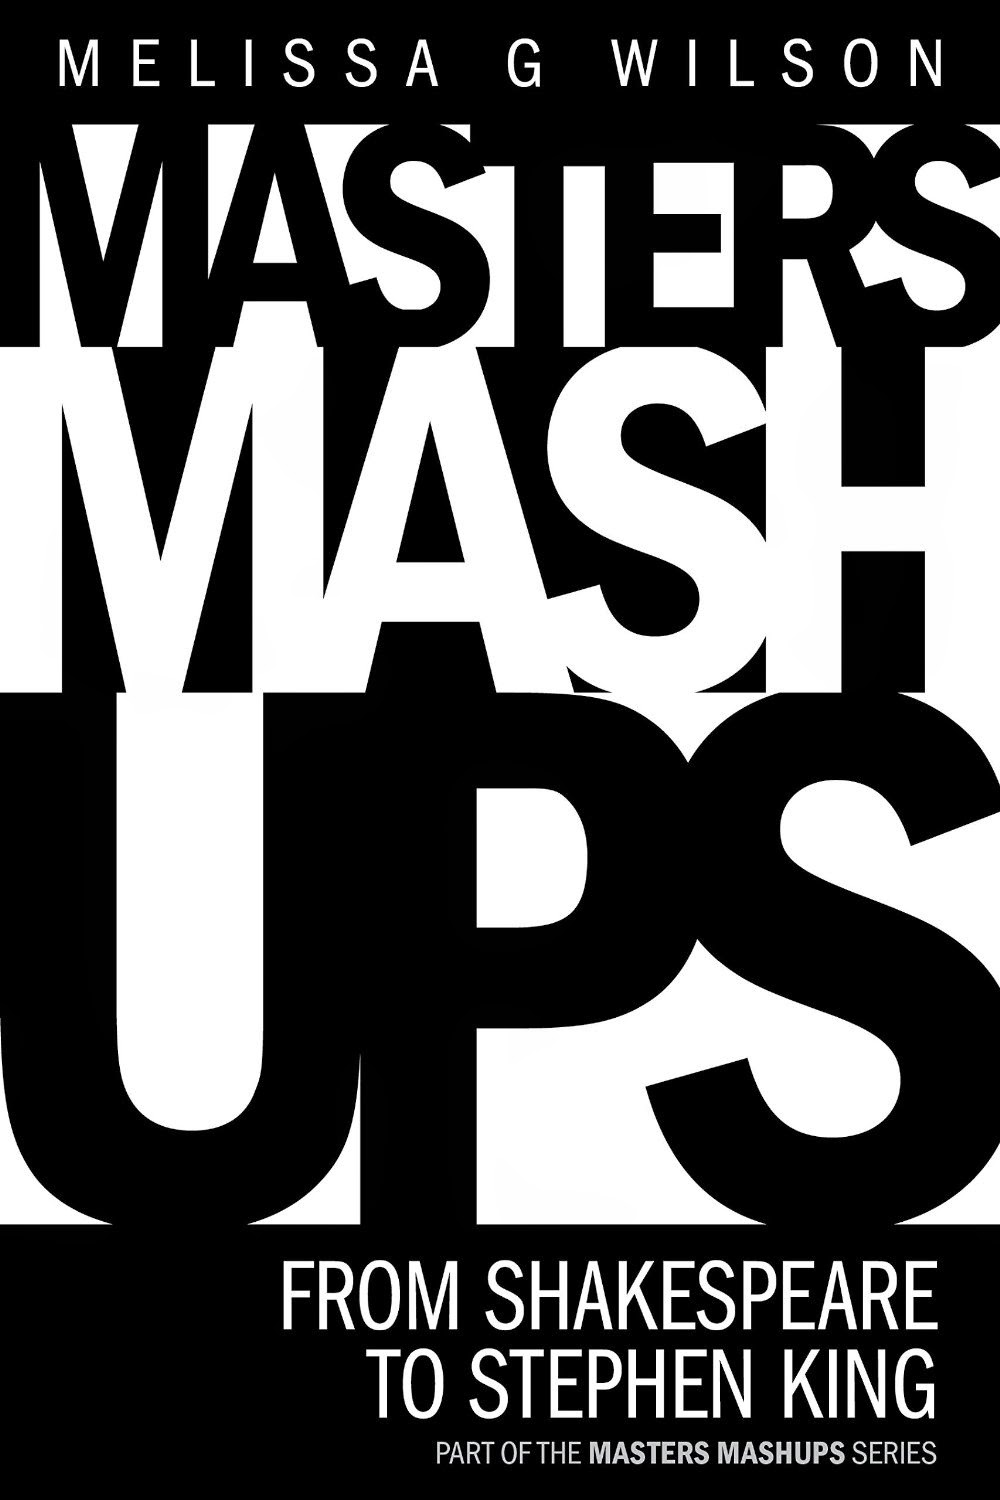 masters mash ups, from shakespeare to stephen king, mash up, stephen king, melissa g wilson